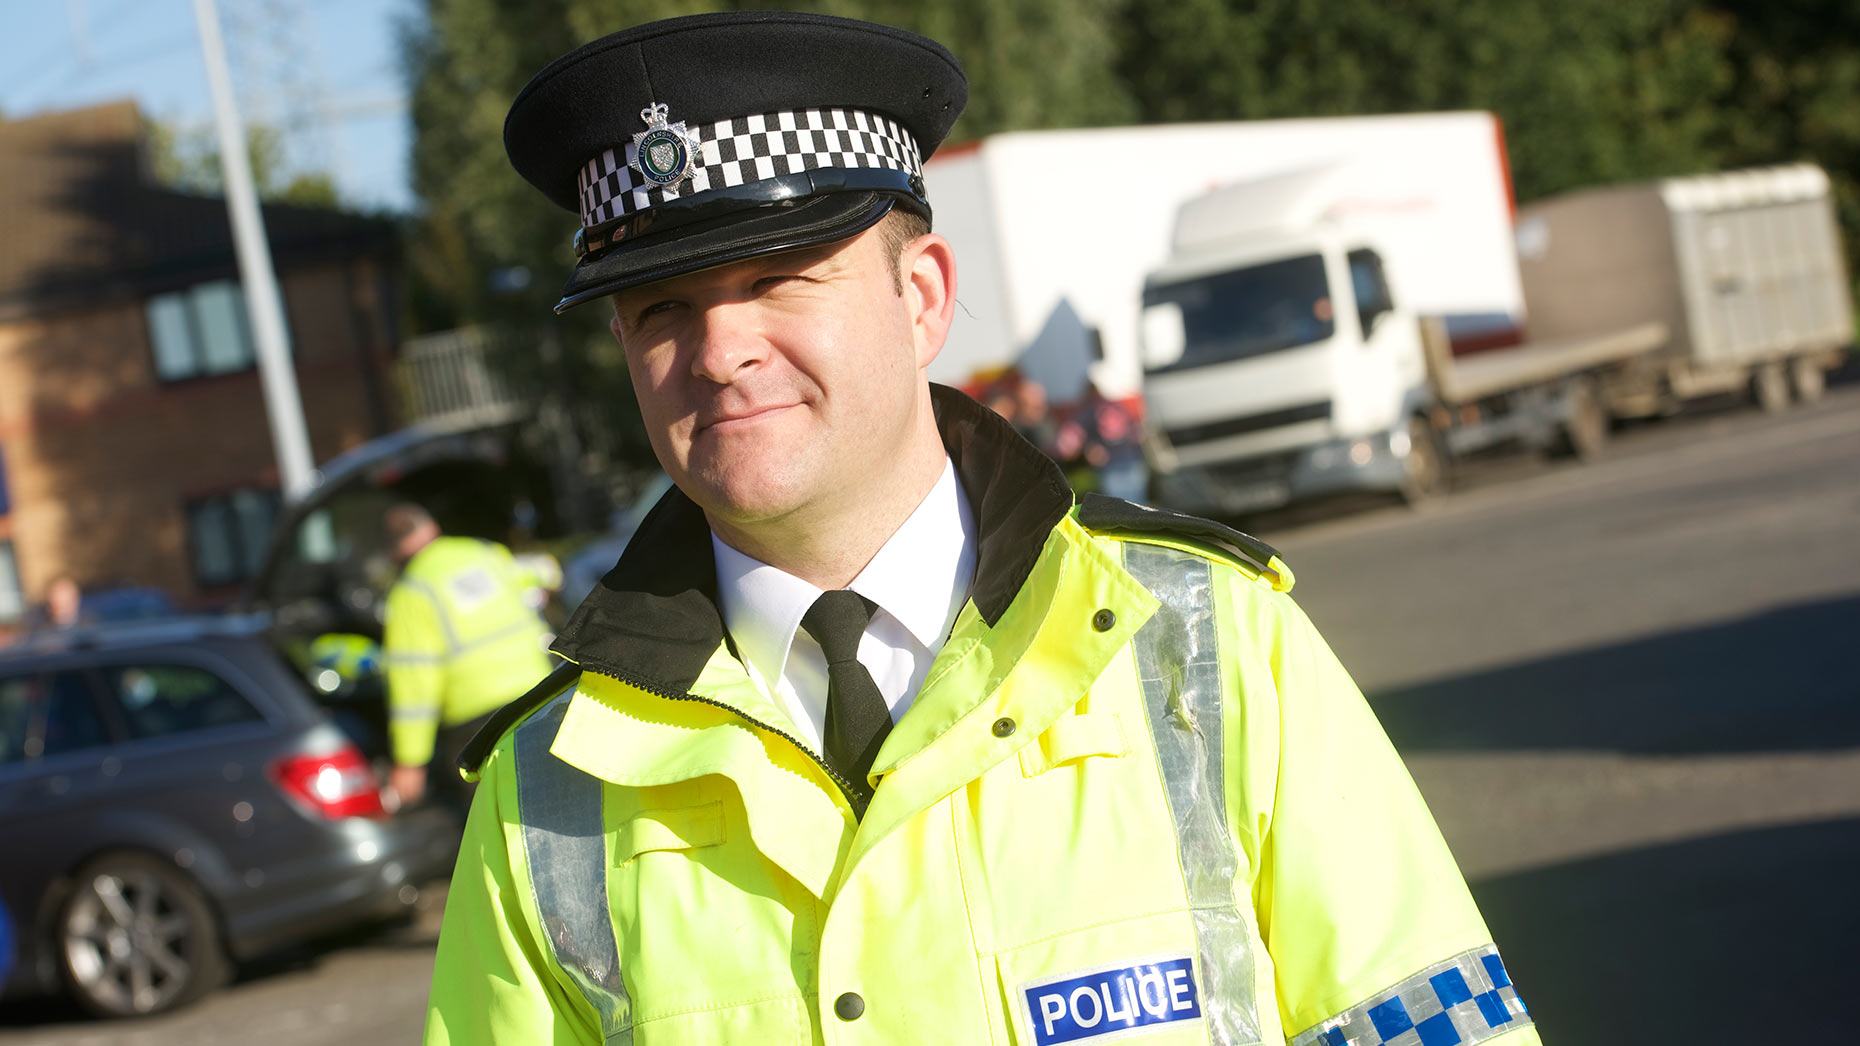 Chief Inspector Phil Vickers. Photo: Steve Smailes for The Lincolnite